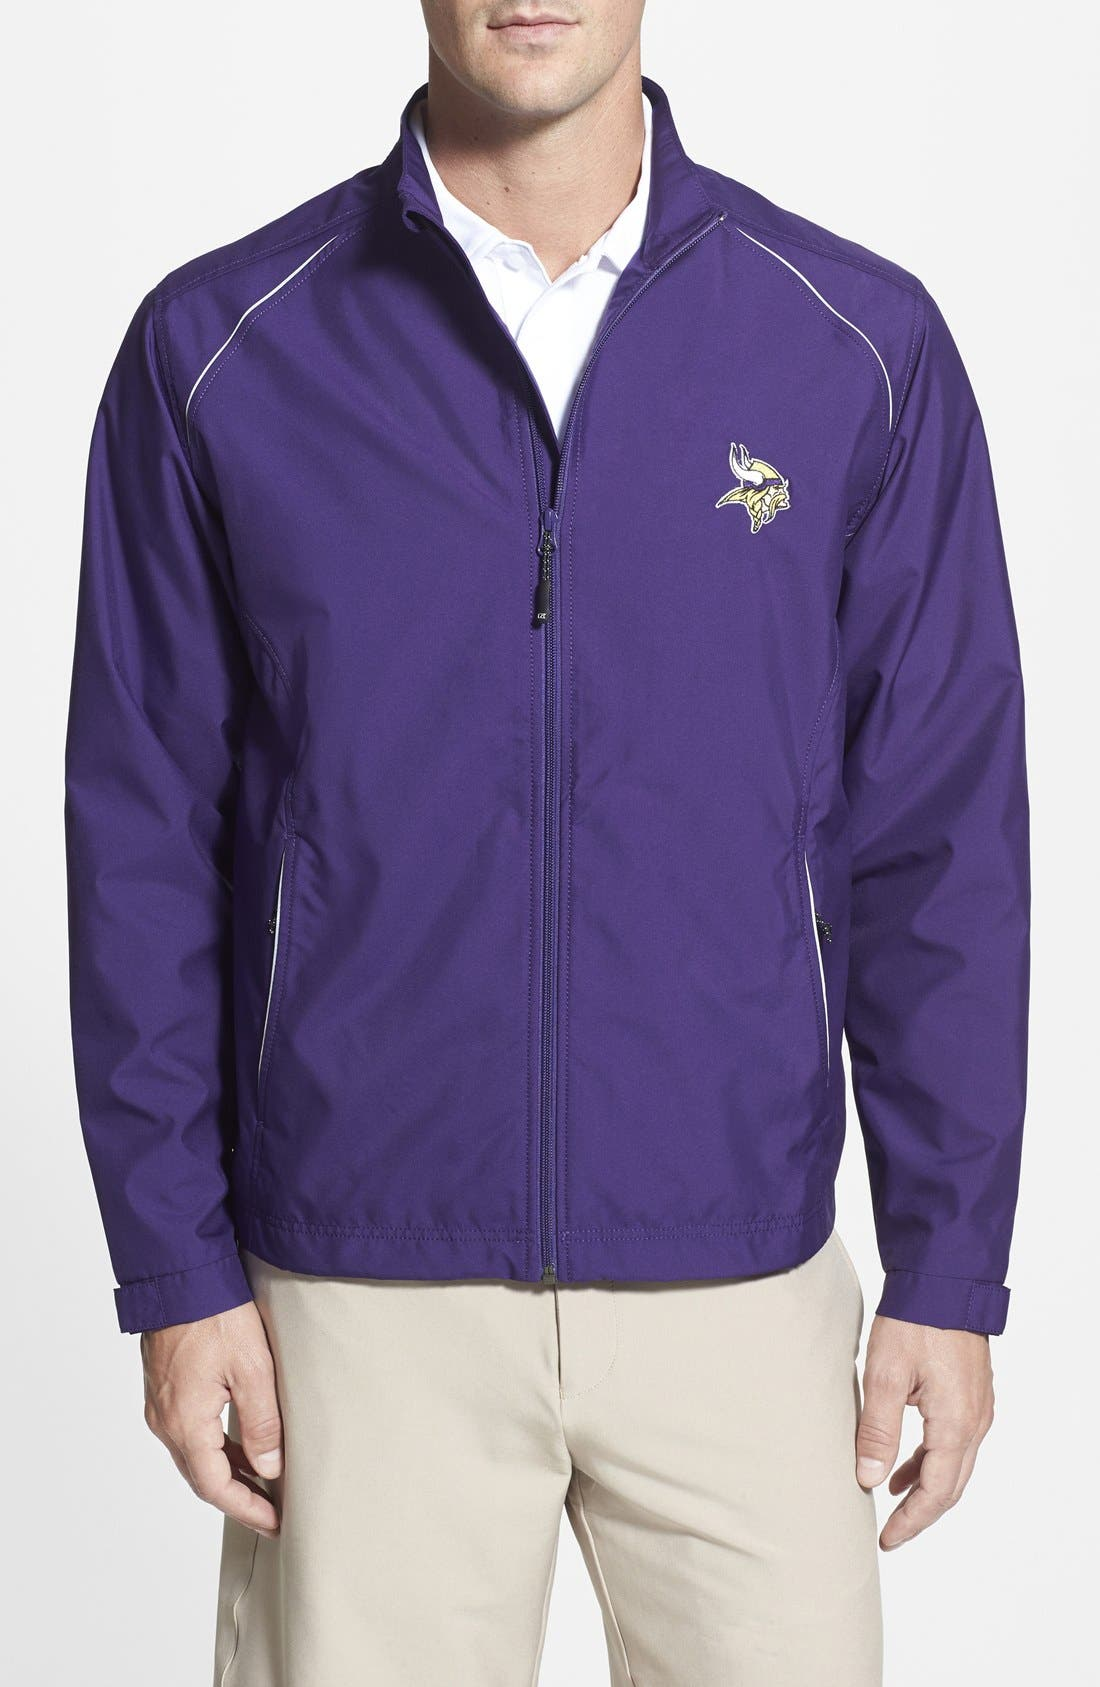 Main Image - Cutter & Buck Minnesota Vikings - Beacon WeatherTec Wind & Water Resistant Jacket